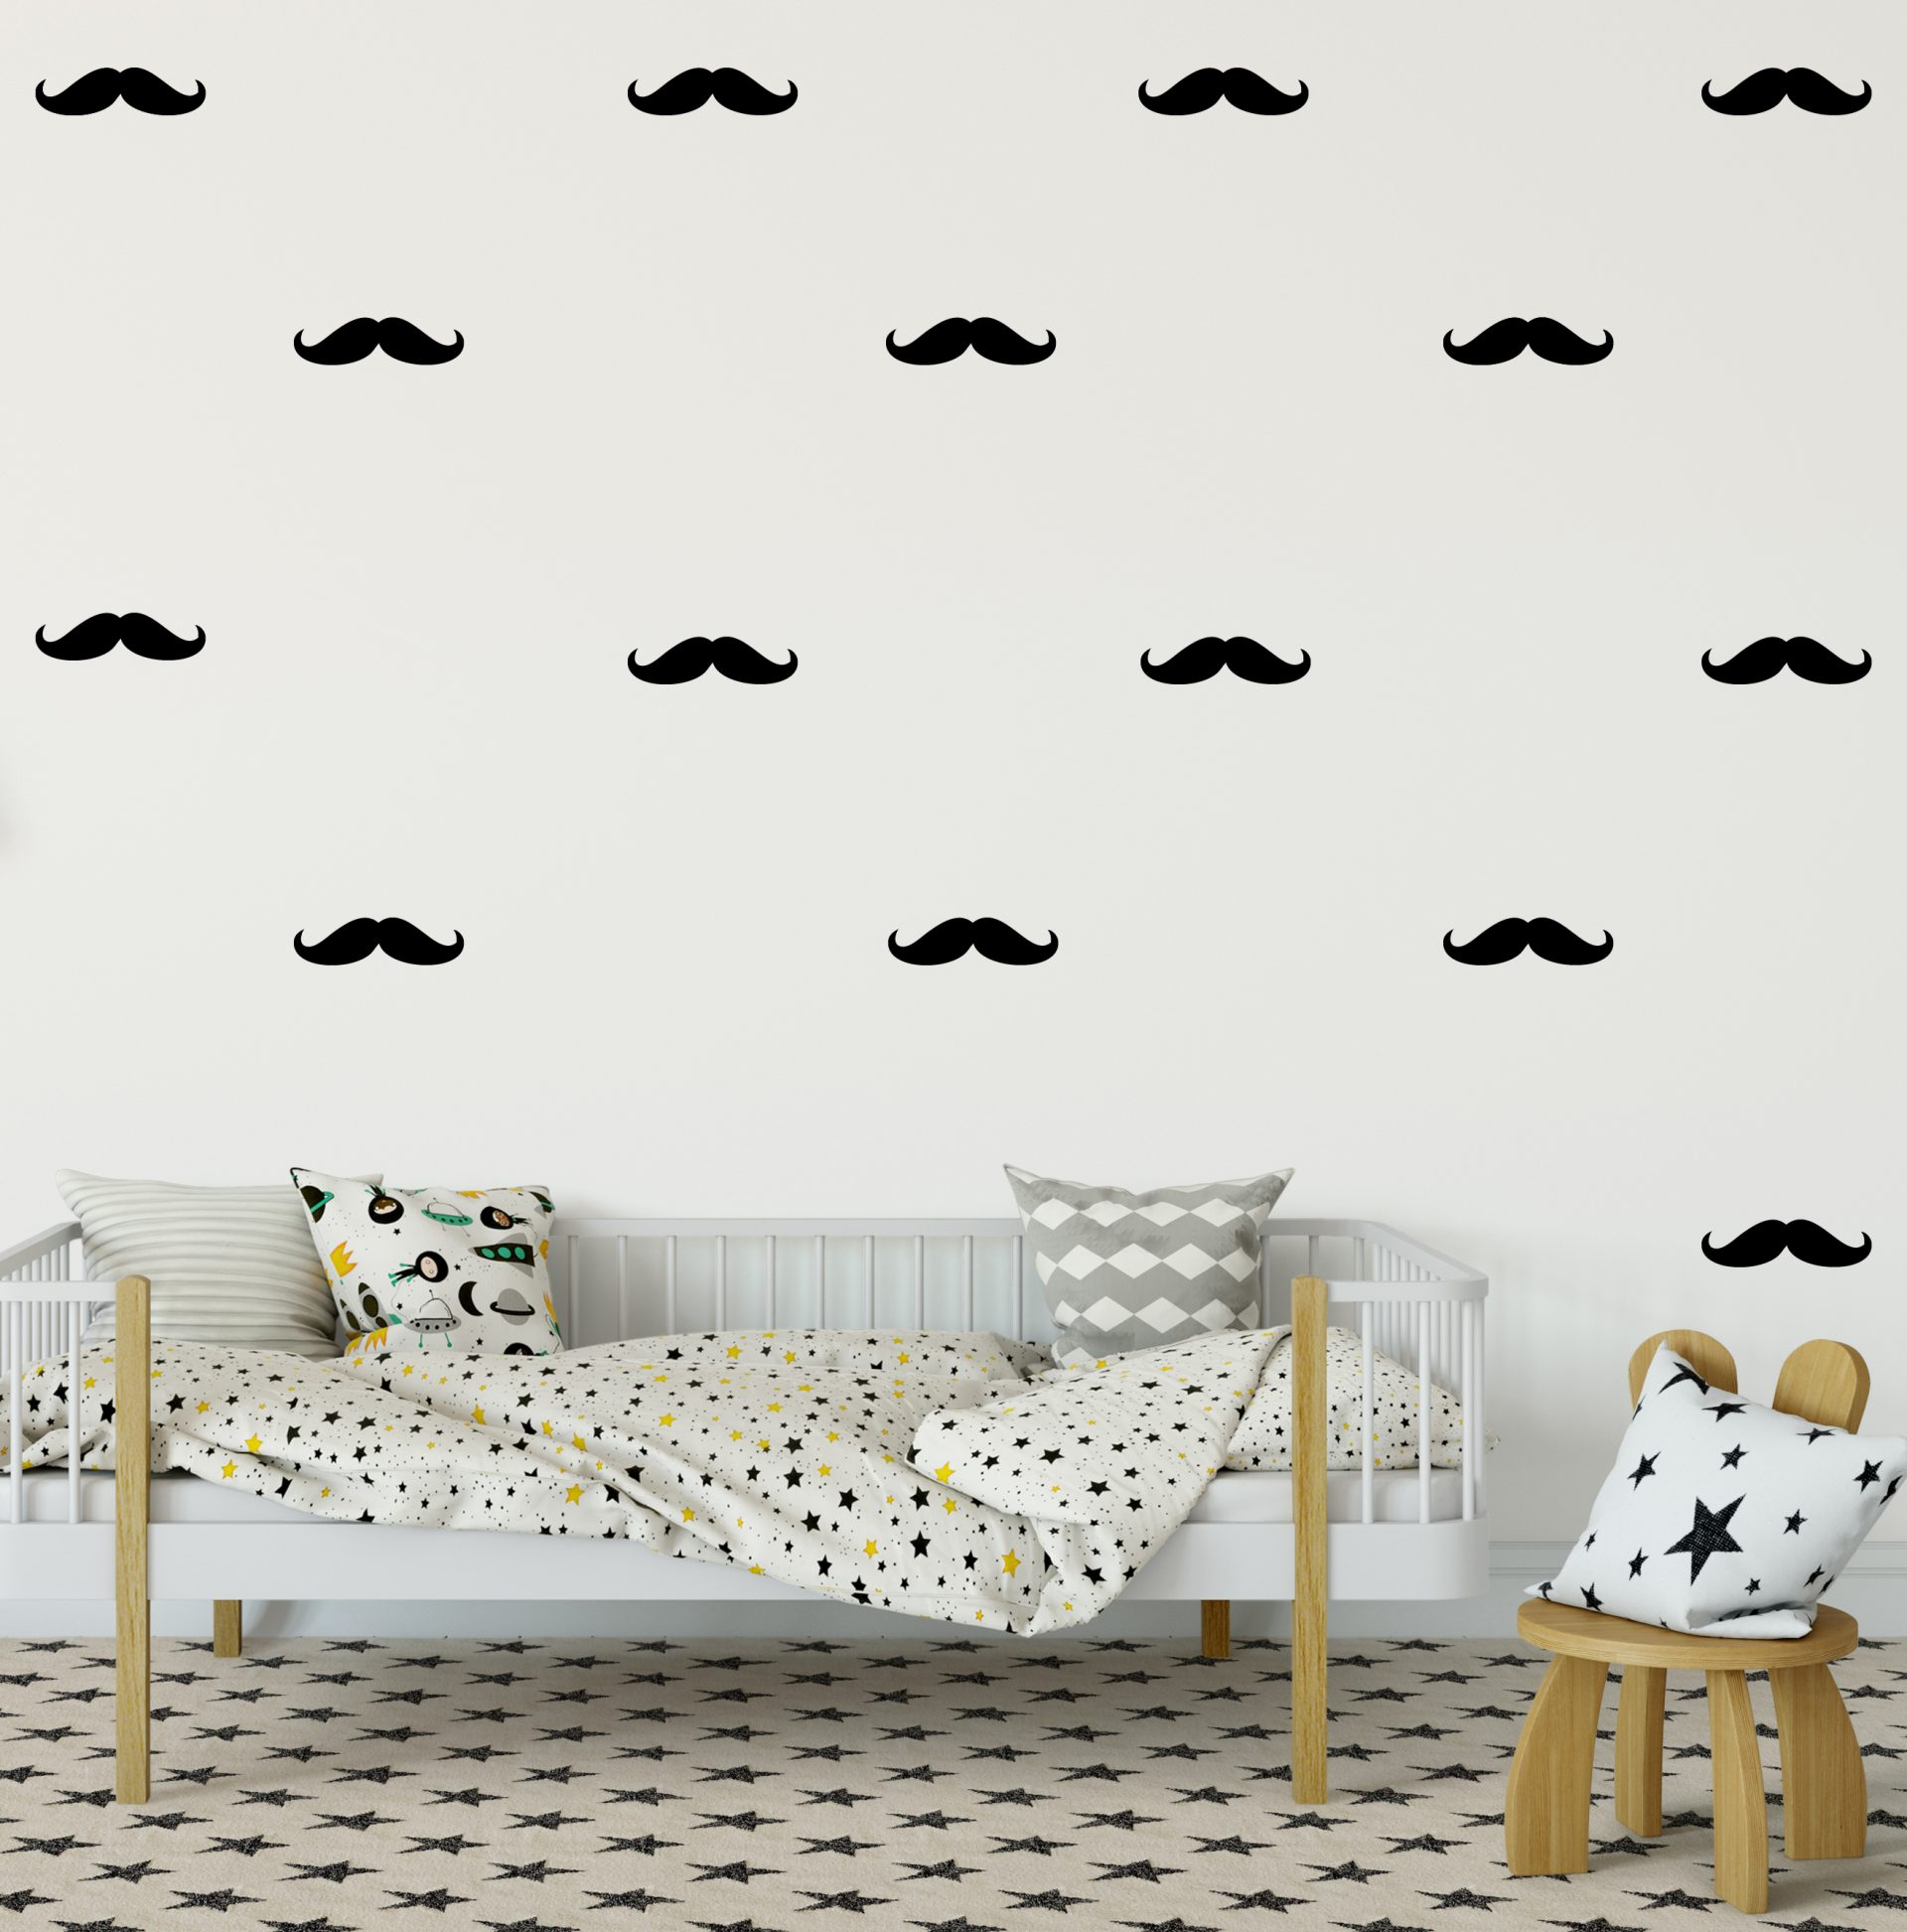 Moustache Wall Decal  sc 1 st  Happy Stickers & Moustache Wall Decal - Happy Stickers